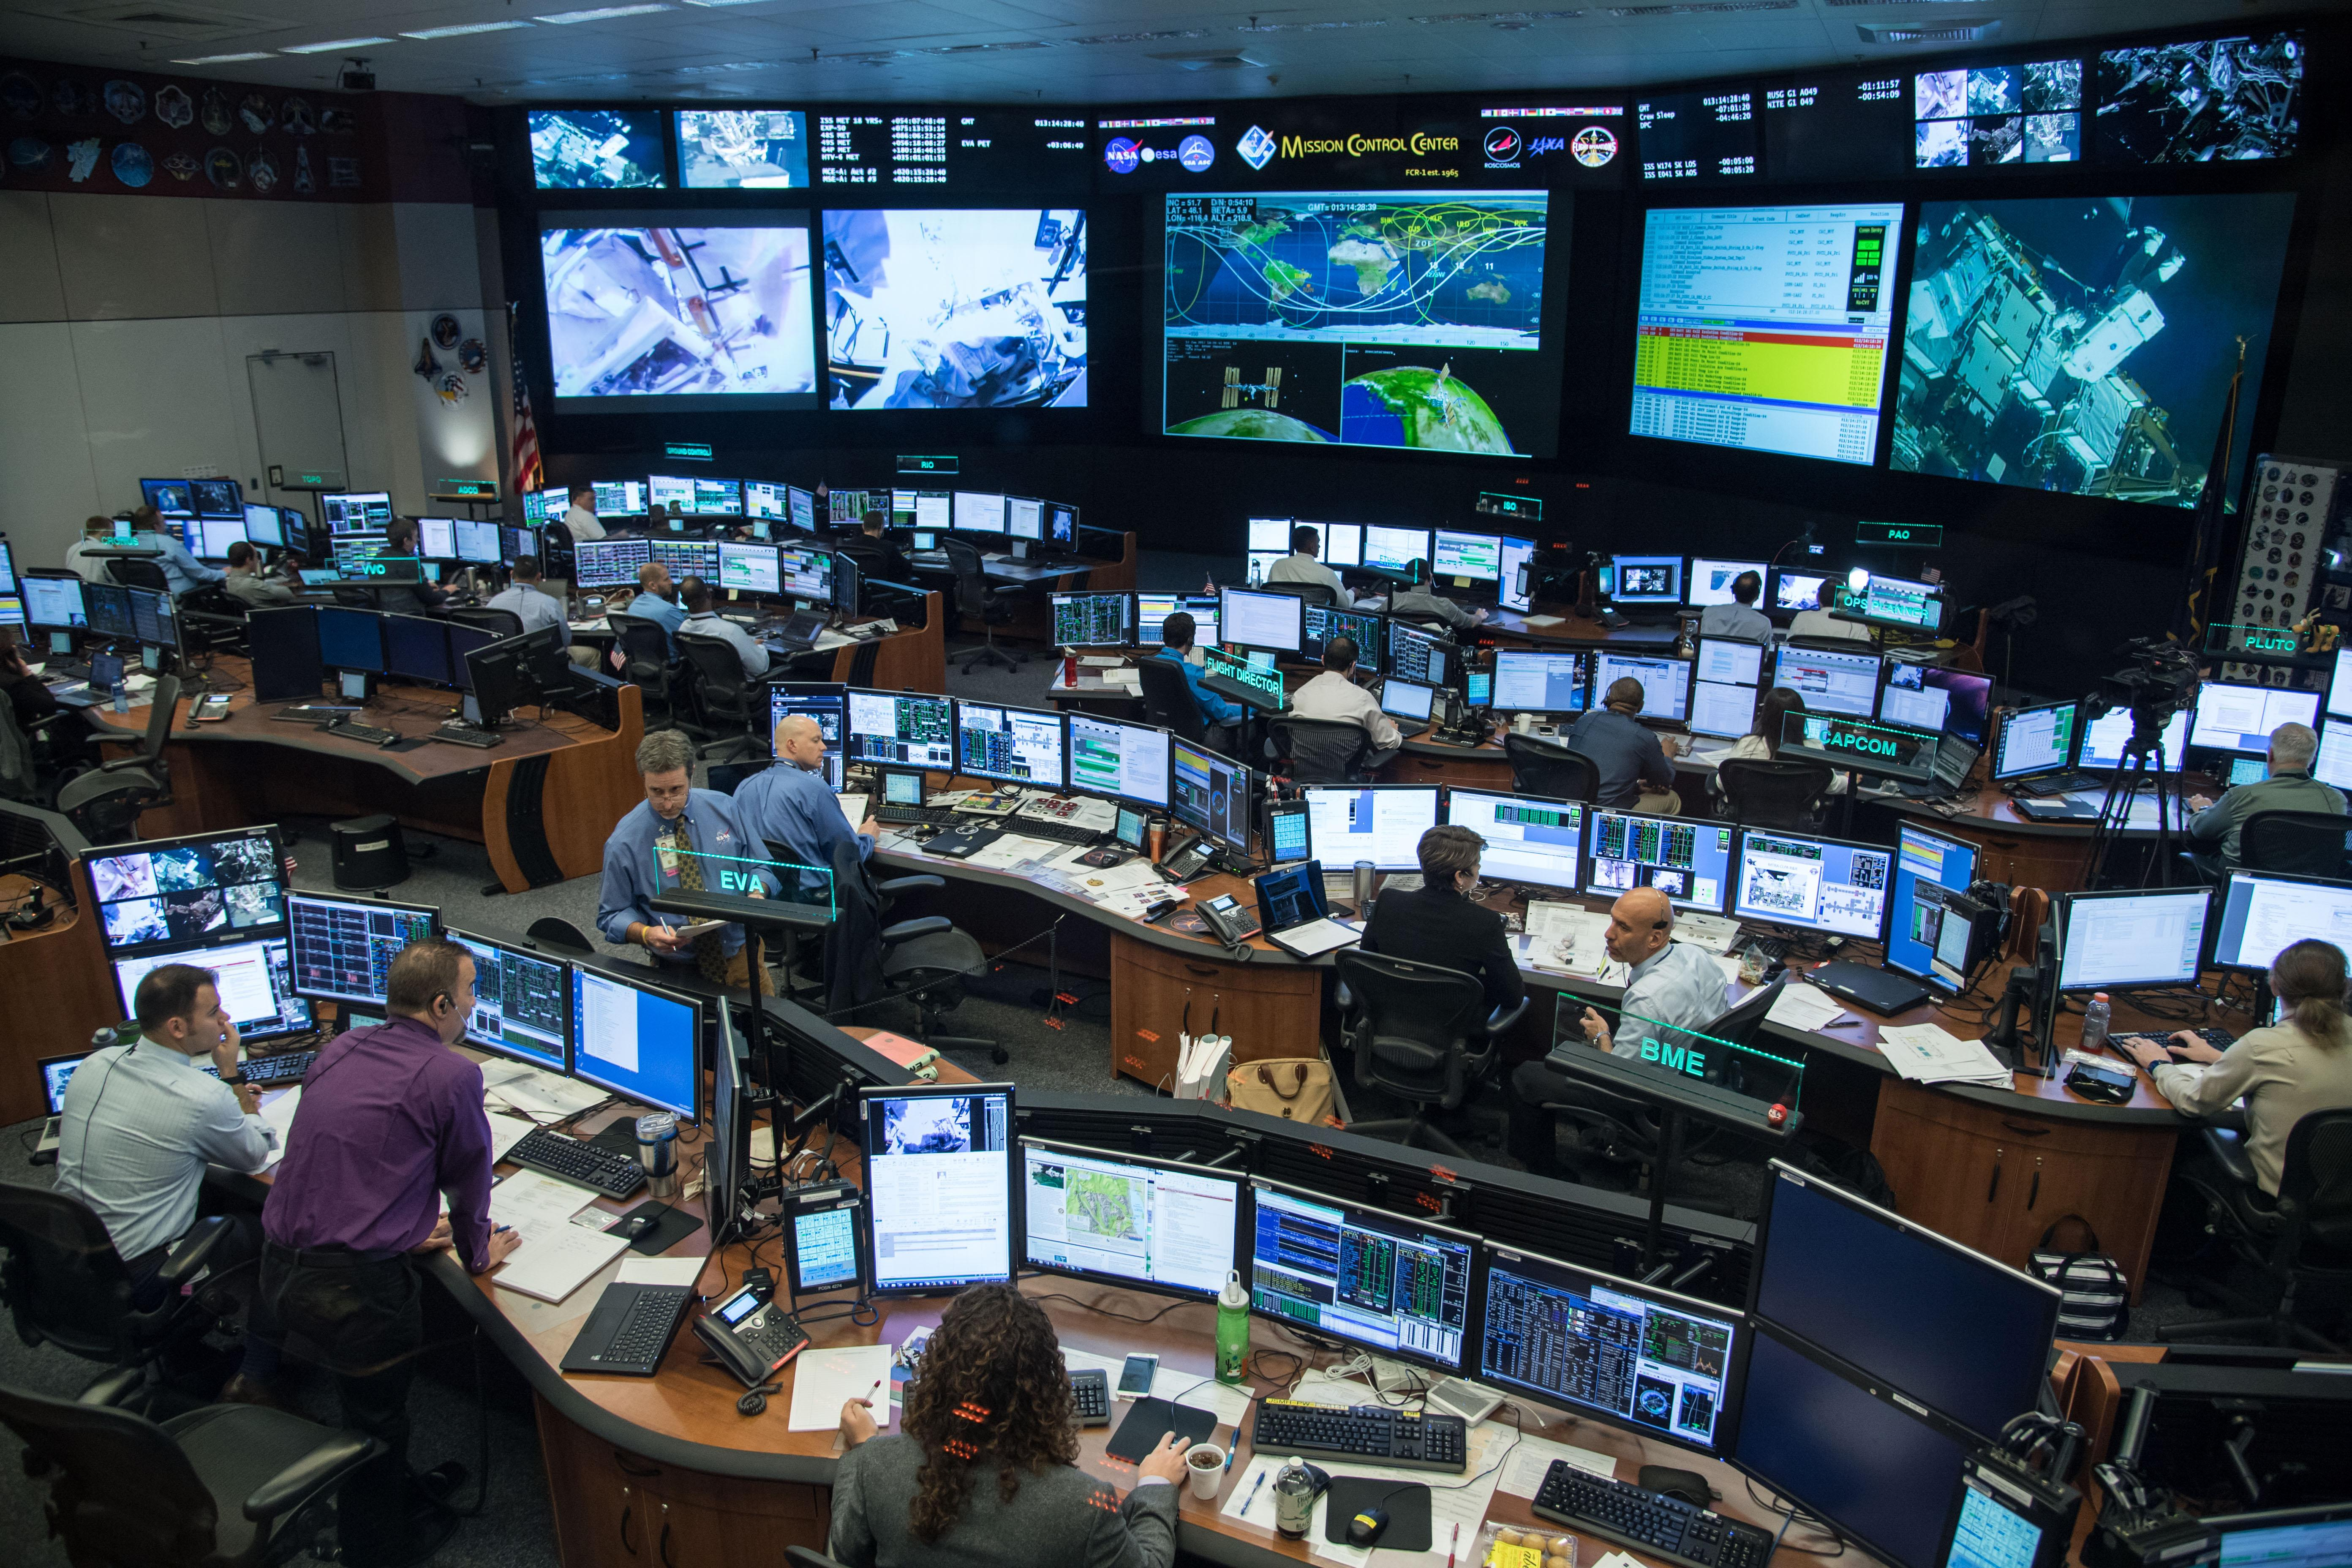 Flight controllers check systems